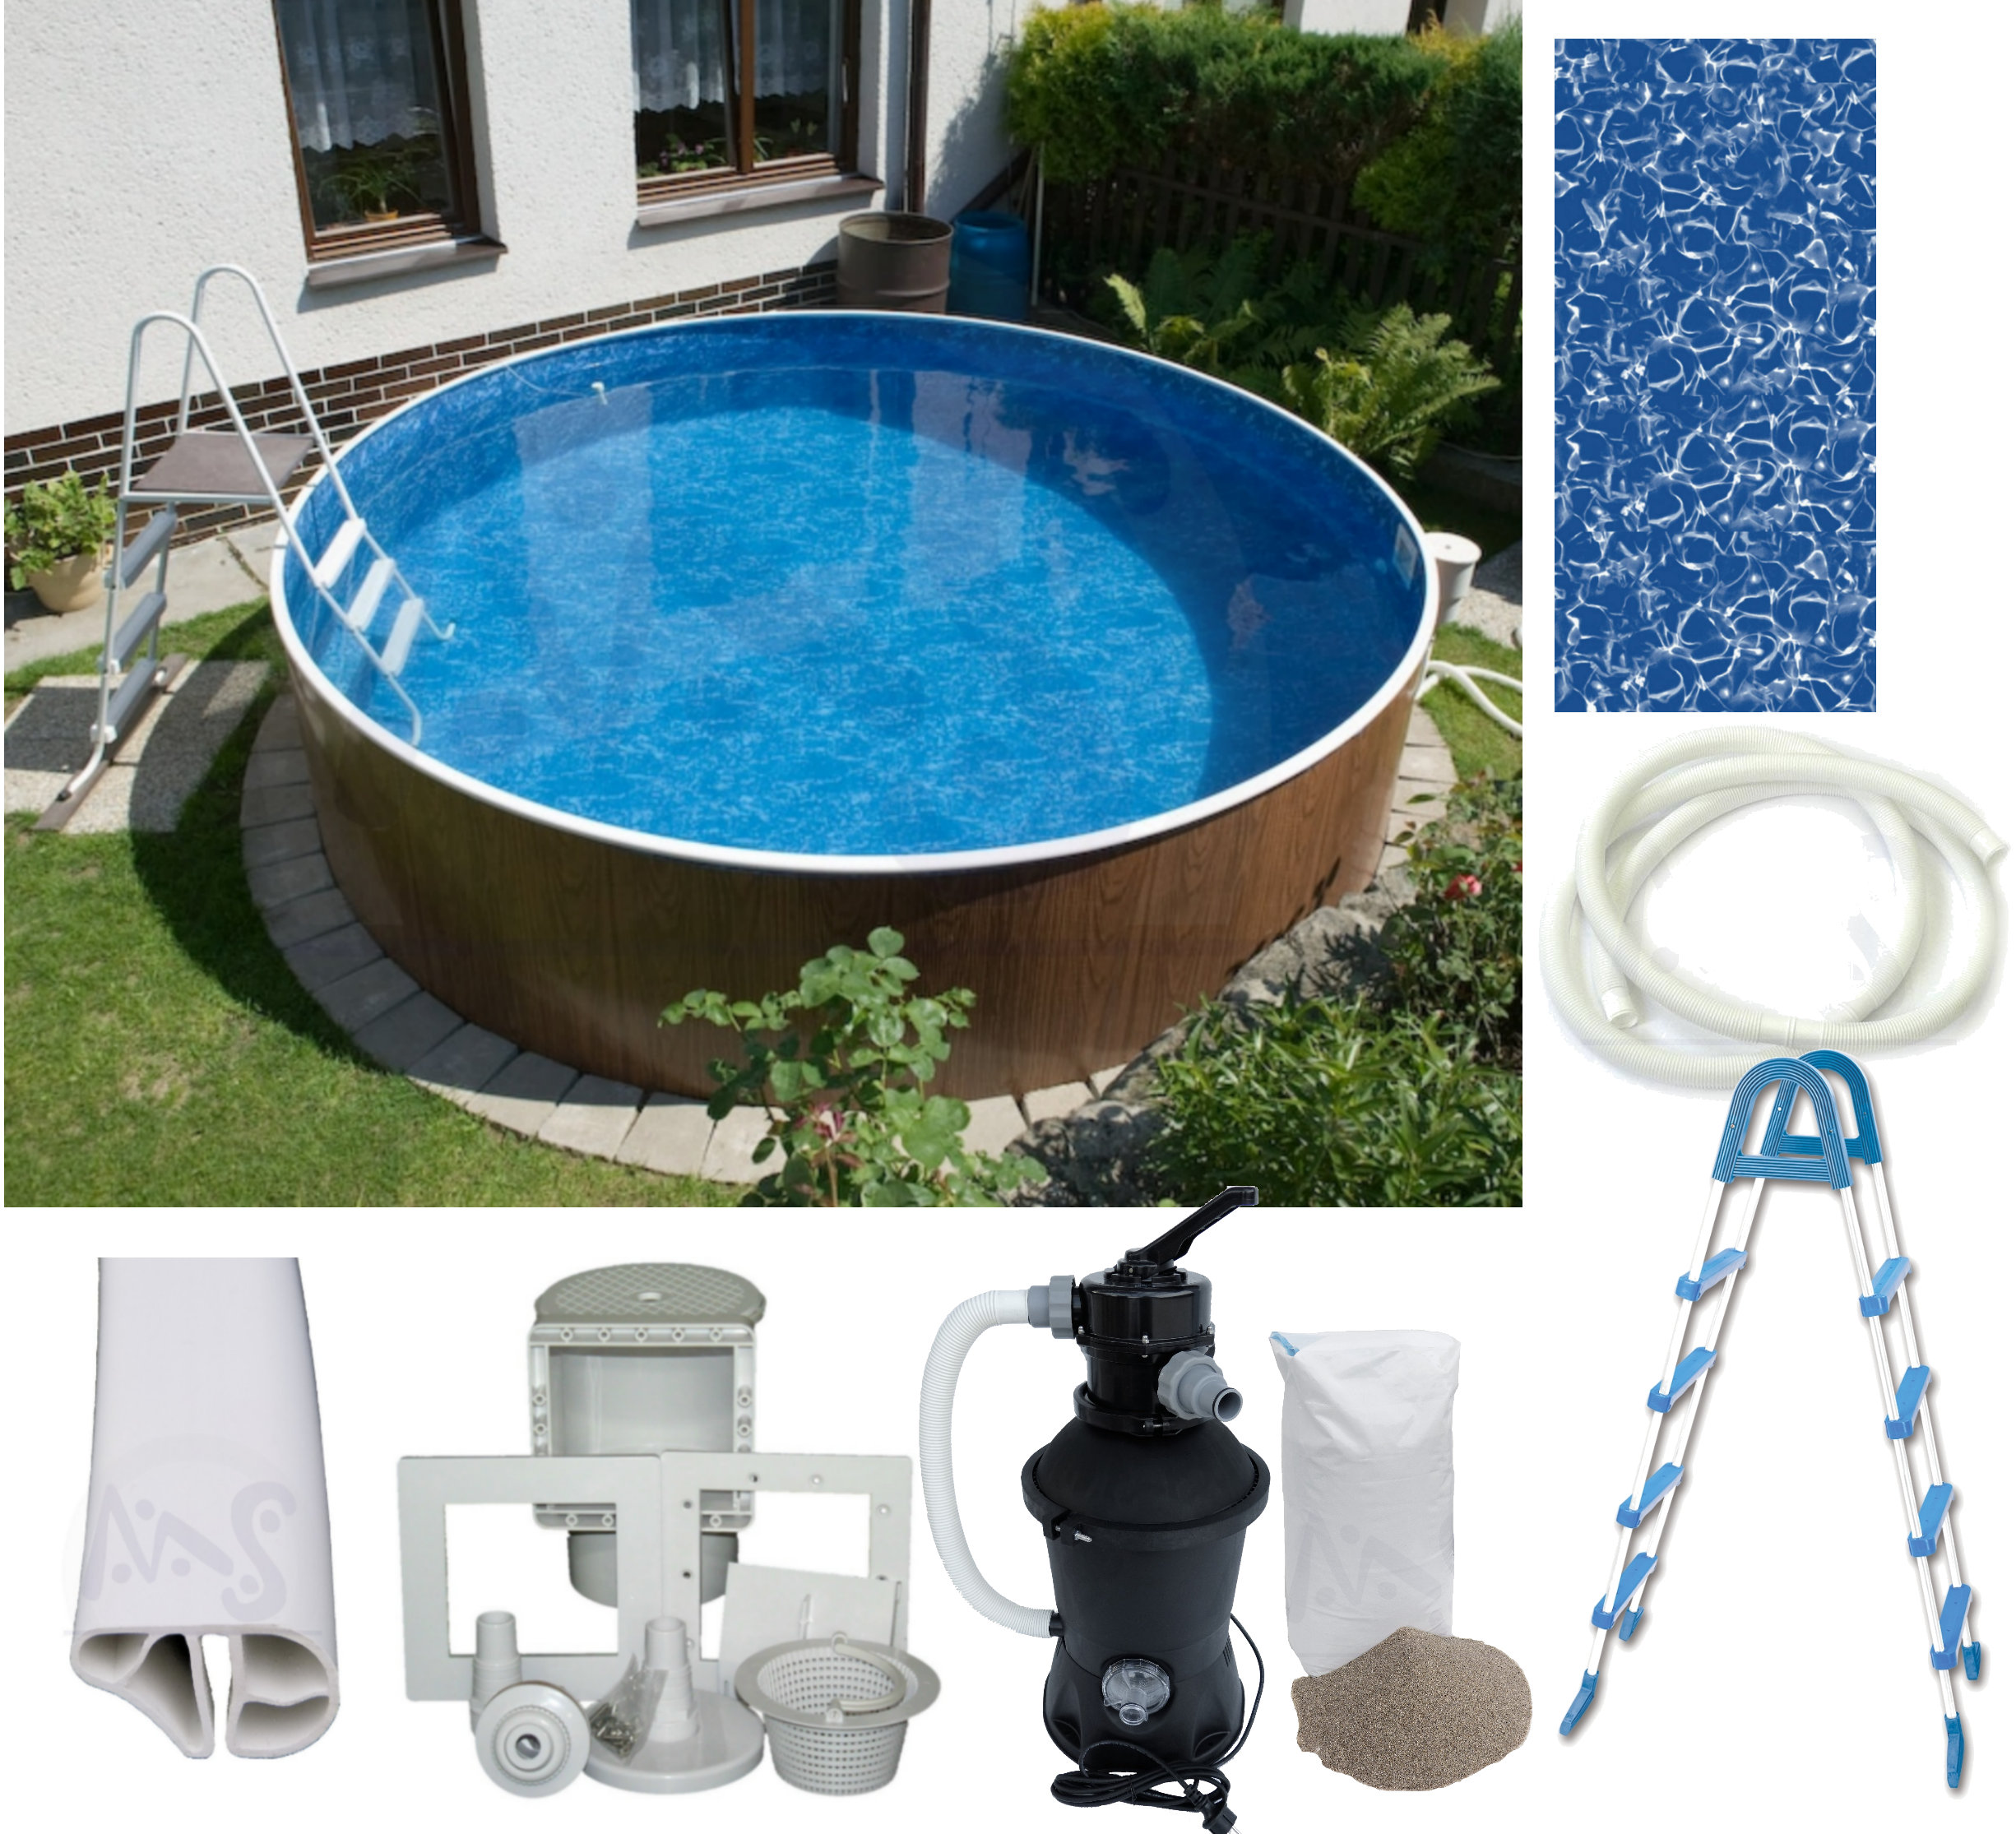 Pool Komplettset Mit Heizung Swimmingpool Swimmingpools Pool Pools Rundbecken Ovalbecken